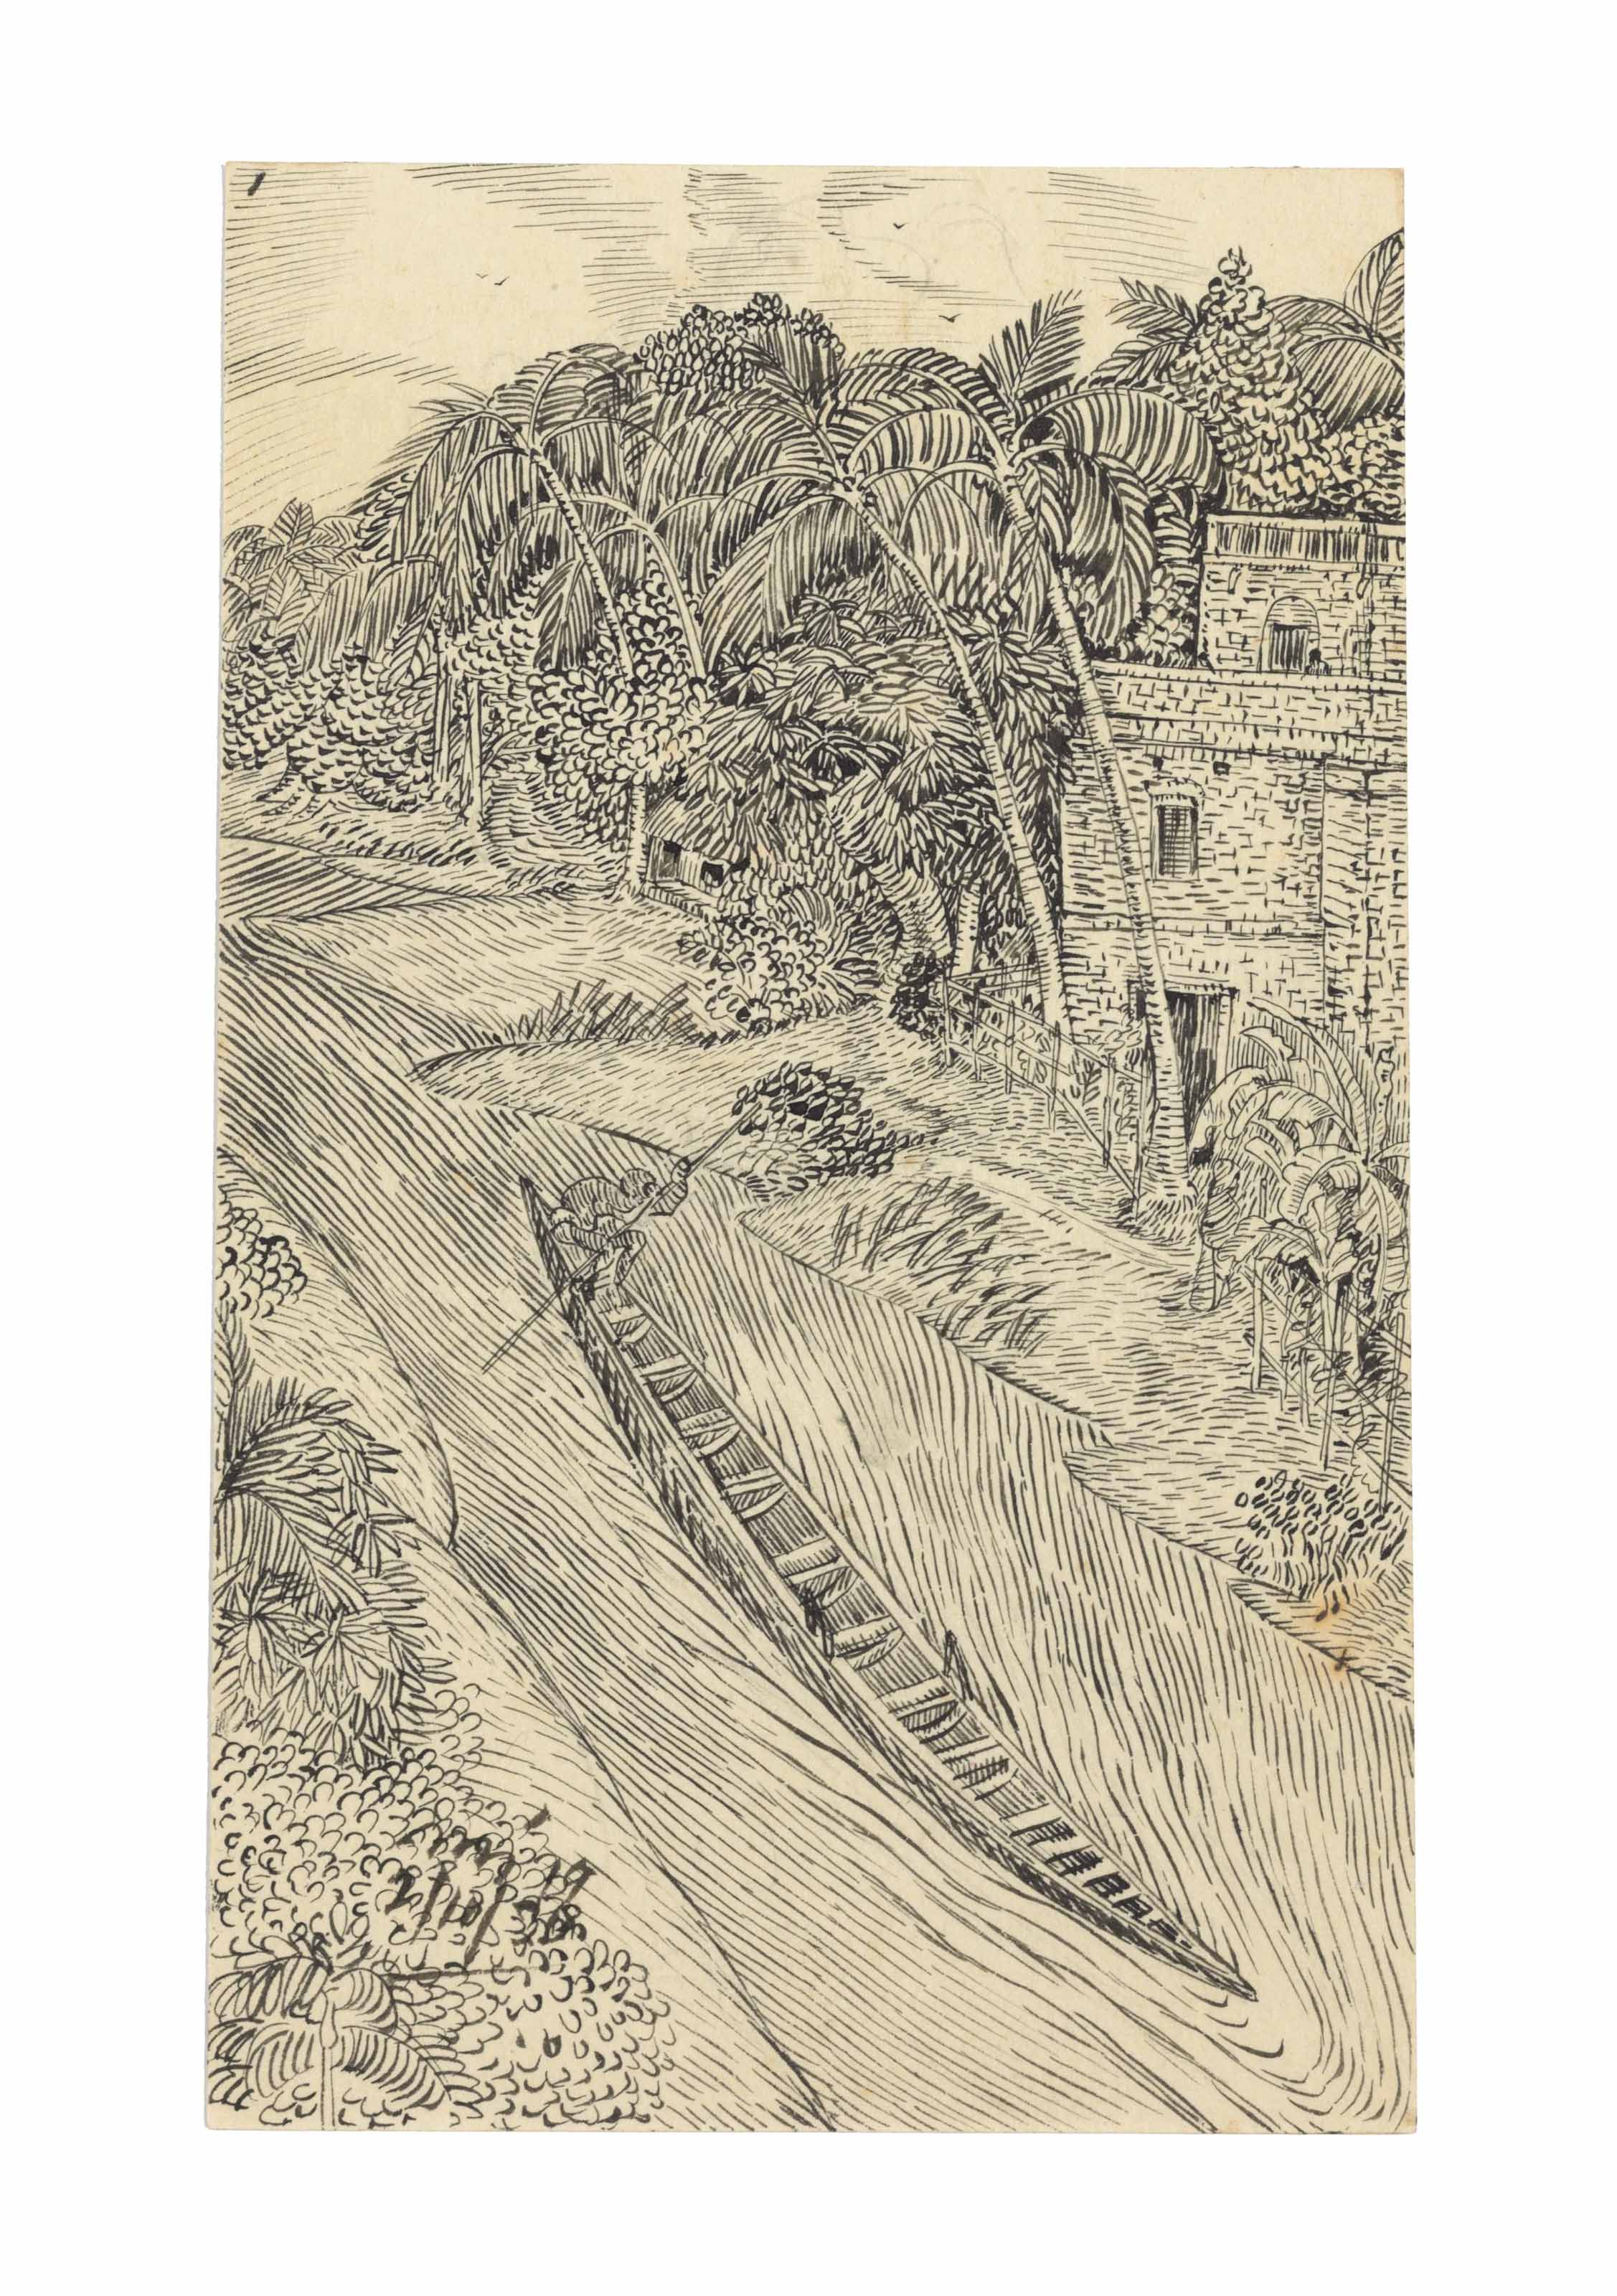 Untitled (Village Canal)